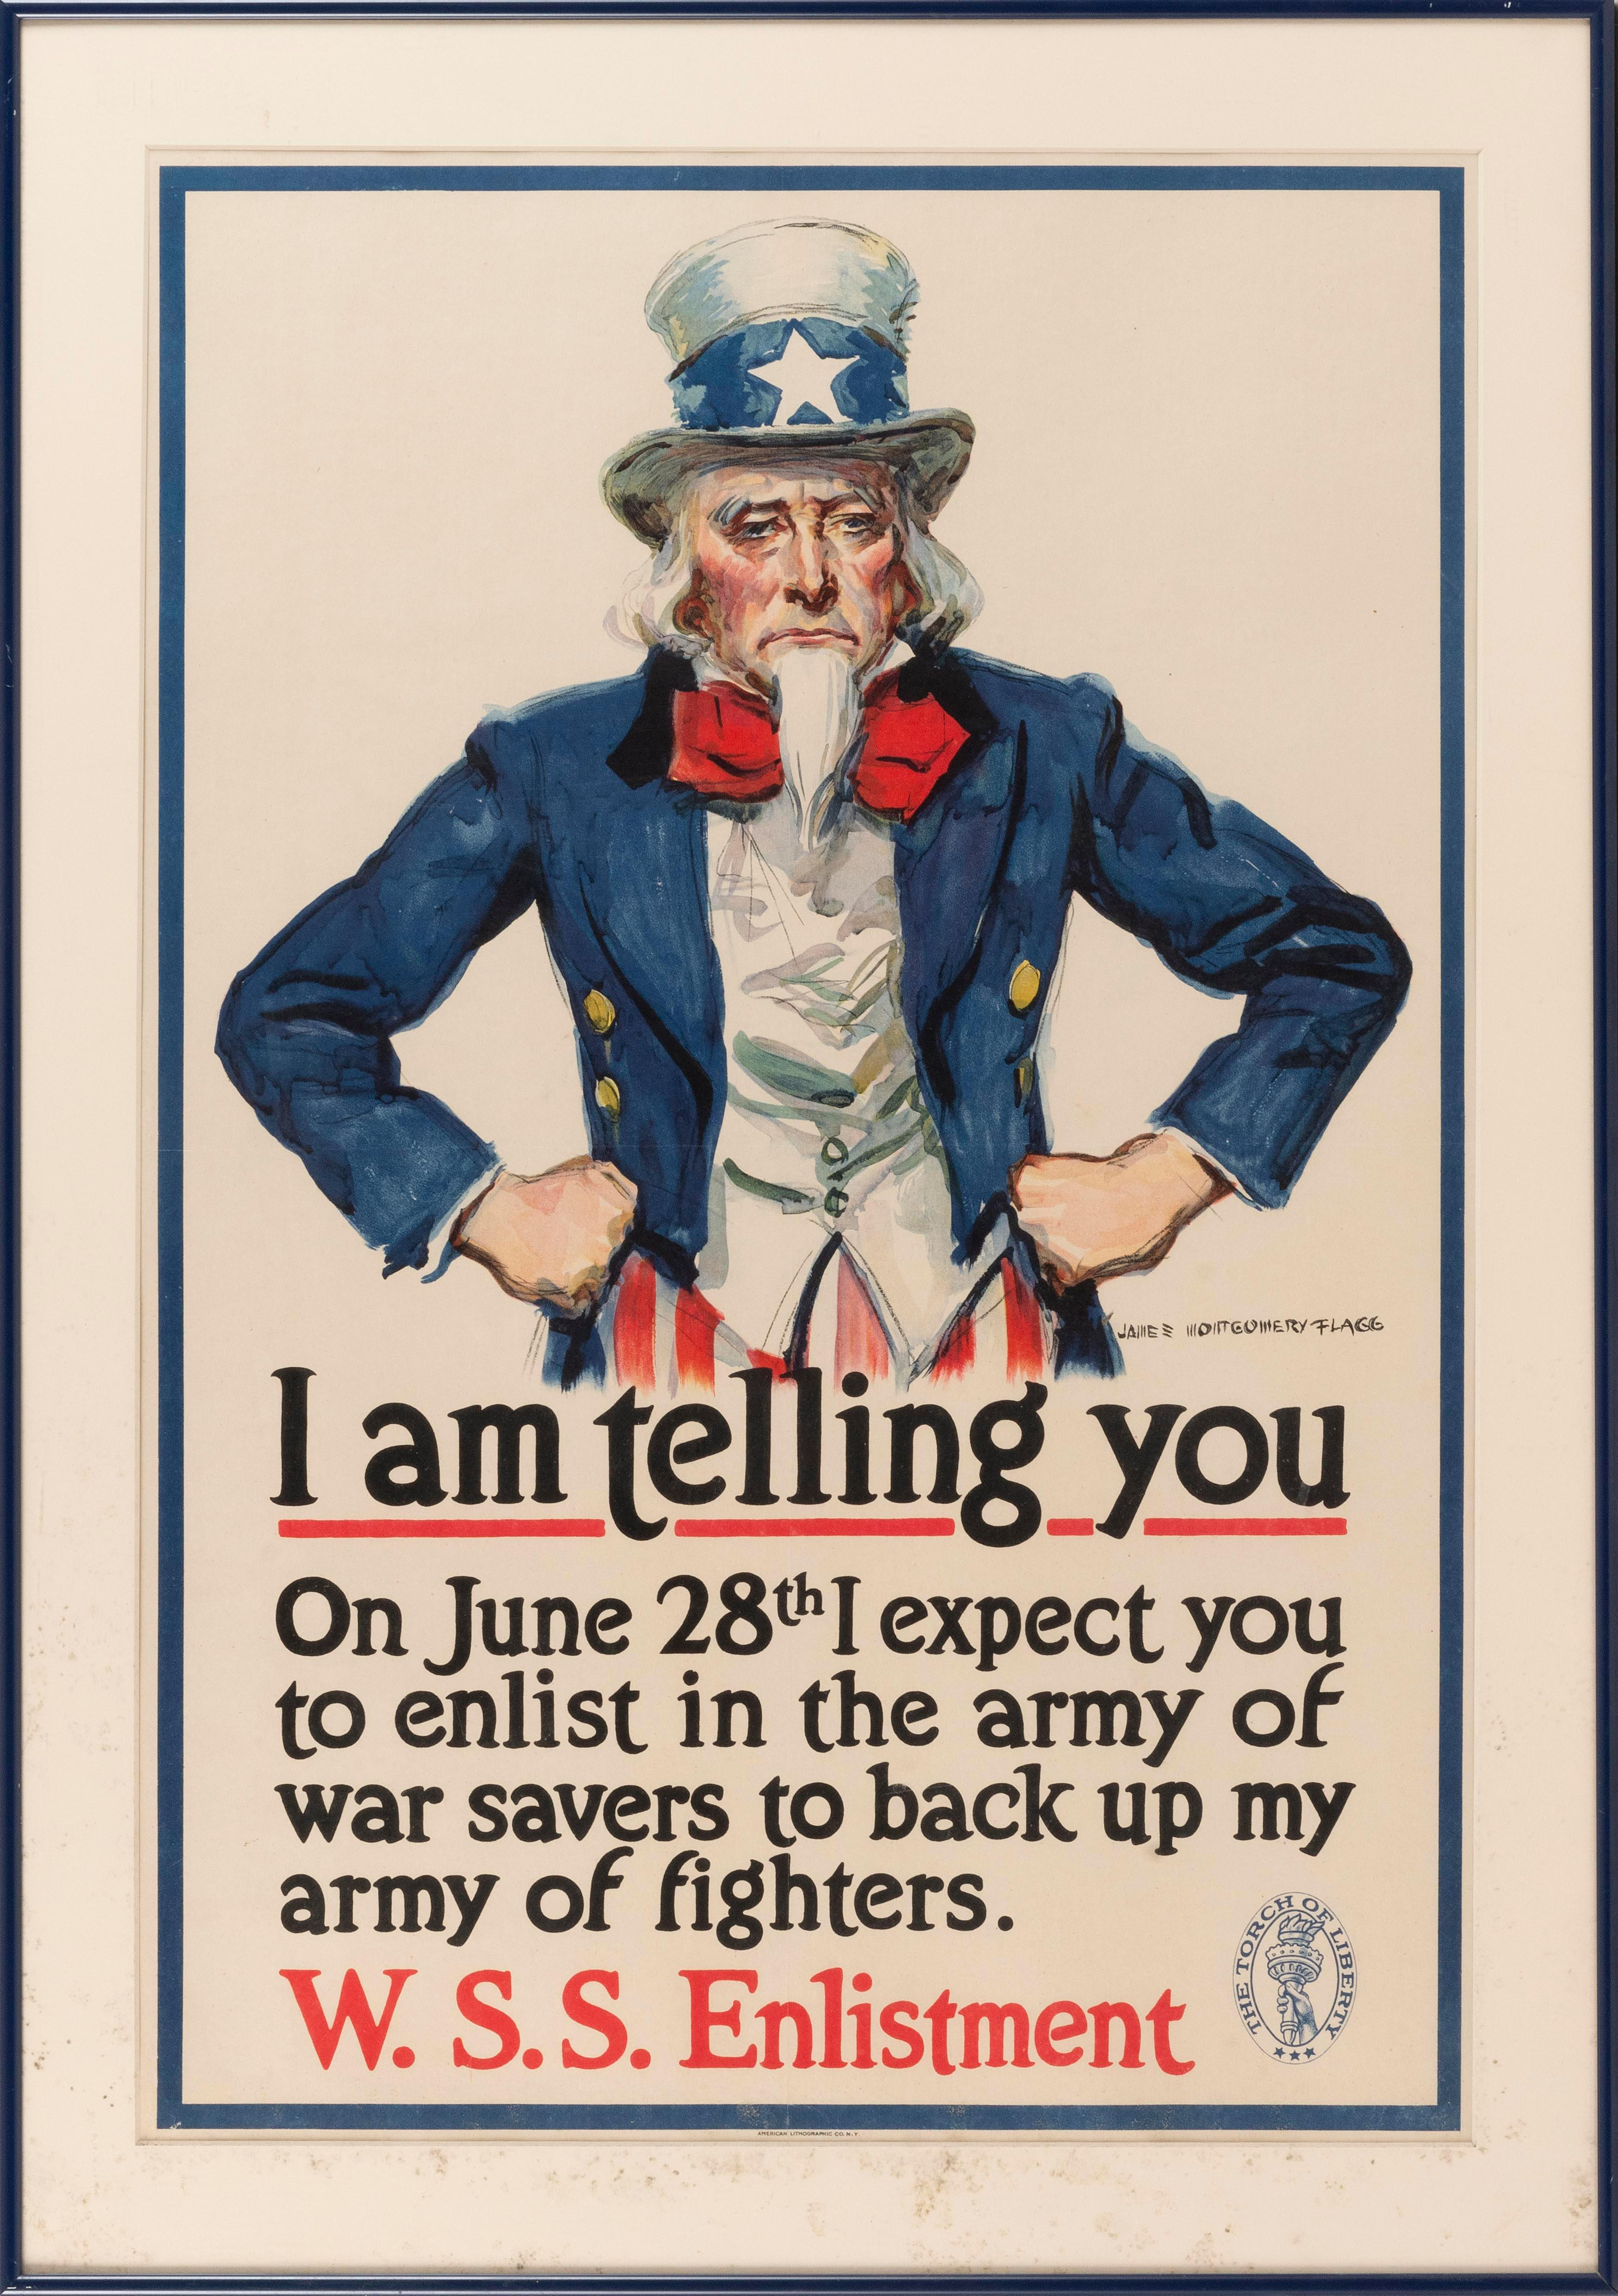 """I AM TELLING YOU ... "" WORLD WAR I POSTER By James Montgomery Flagg for W.S.S. Enlistment, published by the American Lithographic C..."